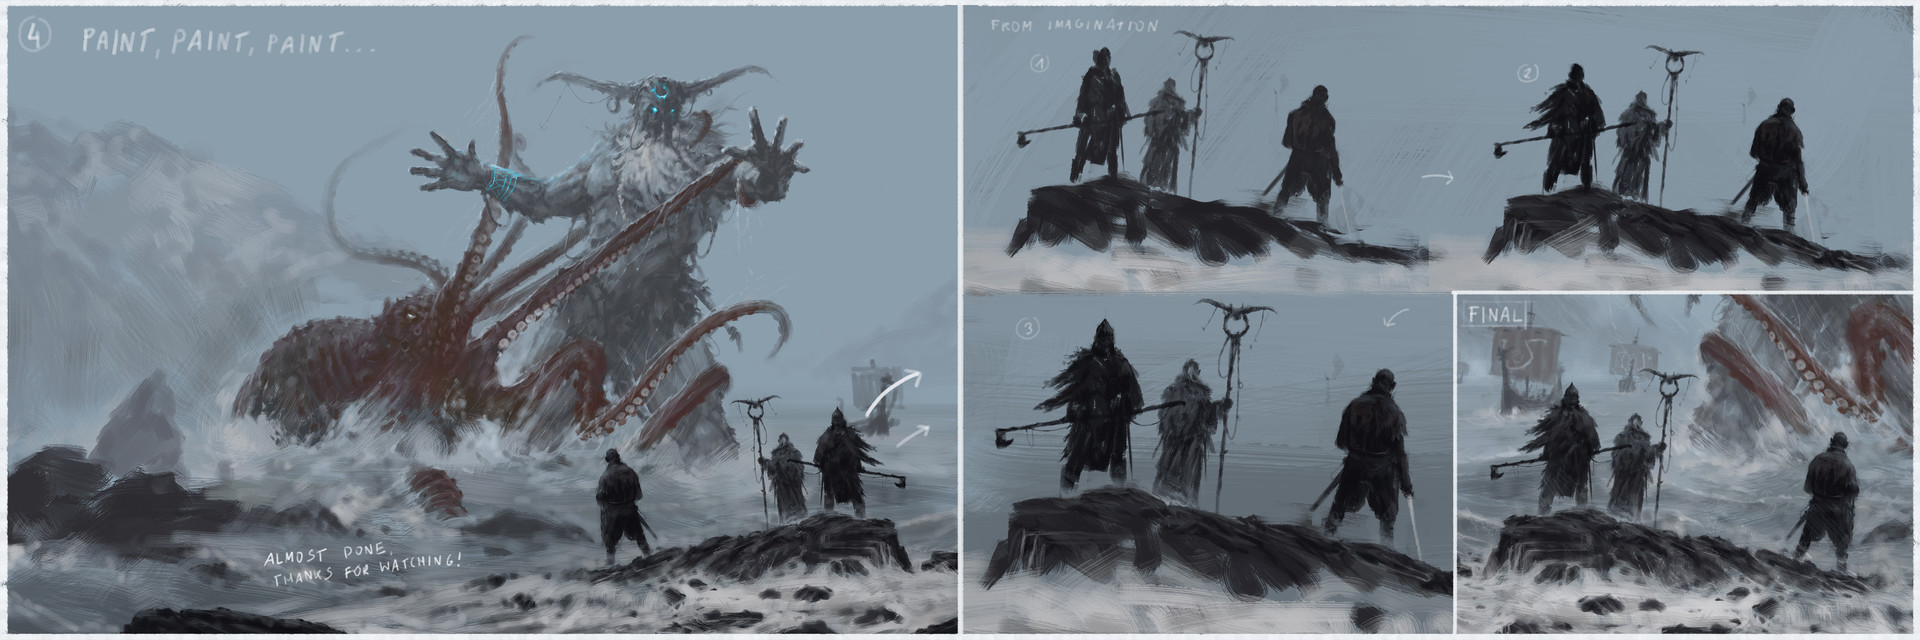 Jakub rozalski ymaar fighting kraken process03